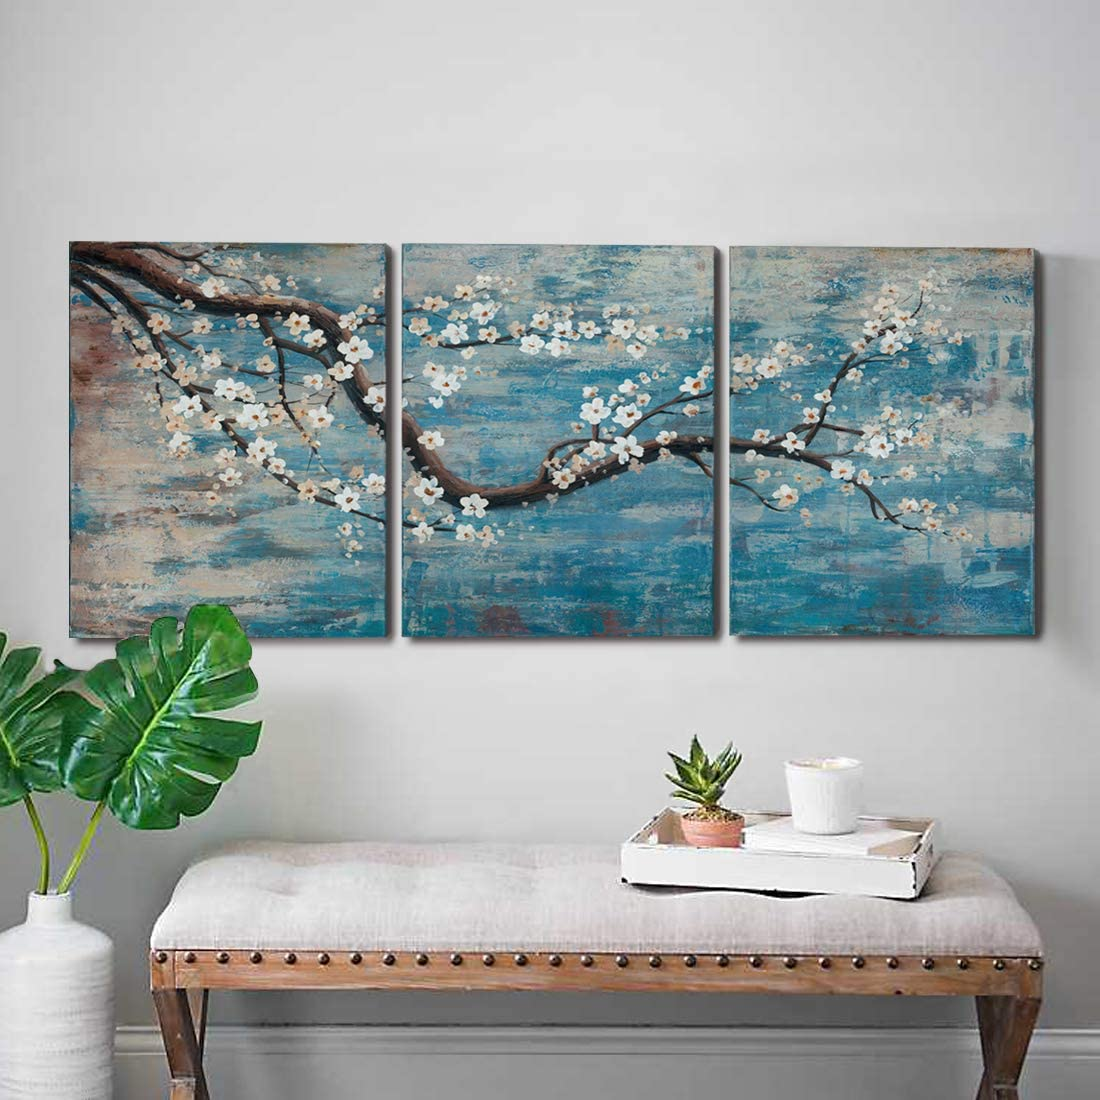 """Amazon.com: amatop 3 Piece Wall Art Hand-Painted Framed Flower Oil Painting On Canvas Gallery Wrapped Modern Floral Artwork for Living Room Bedroom Dcor Teal Blue Lake Ready to Hang 12""""x16""""x3 Panel: Paintings"""